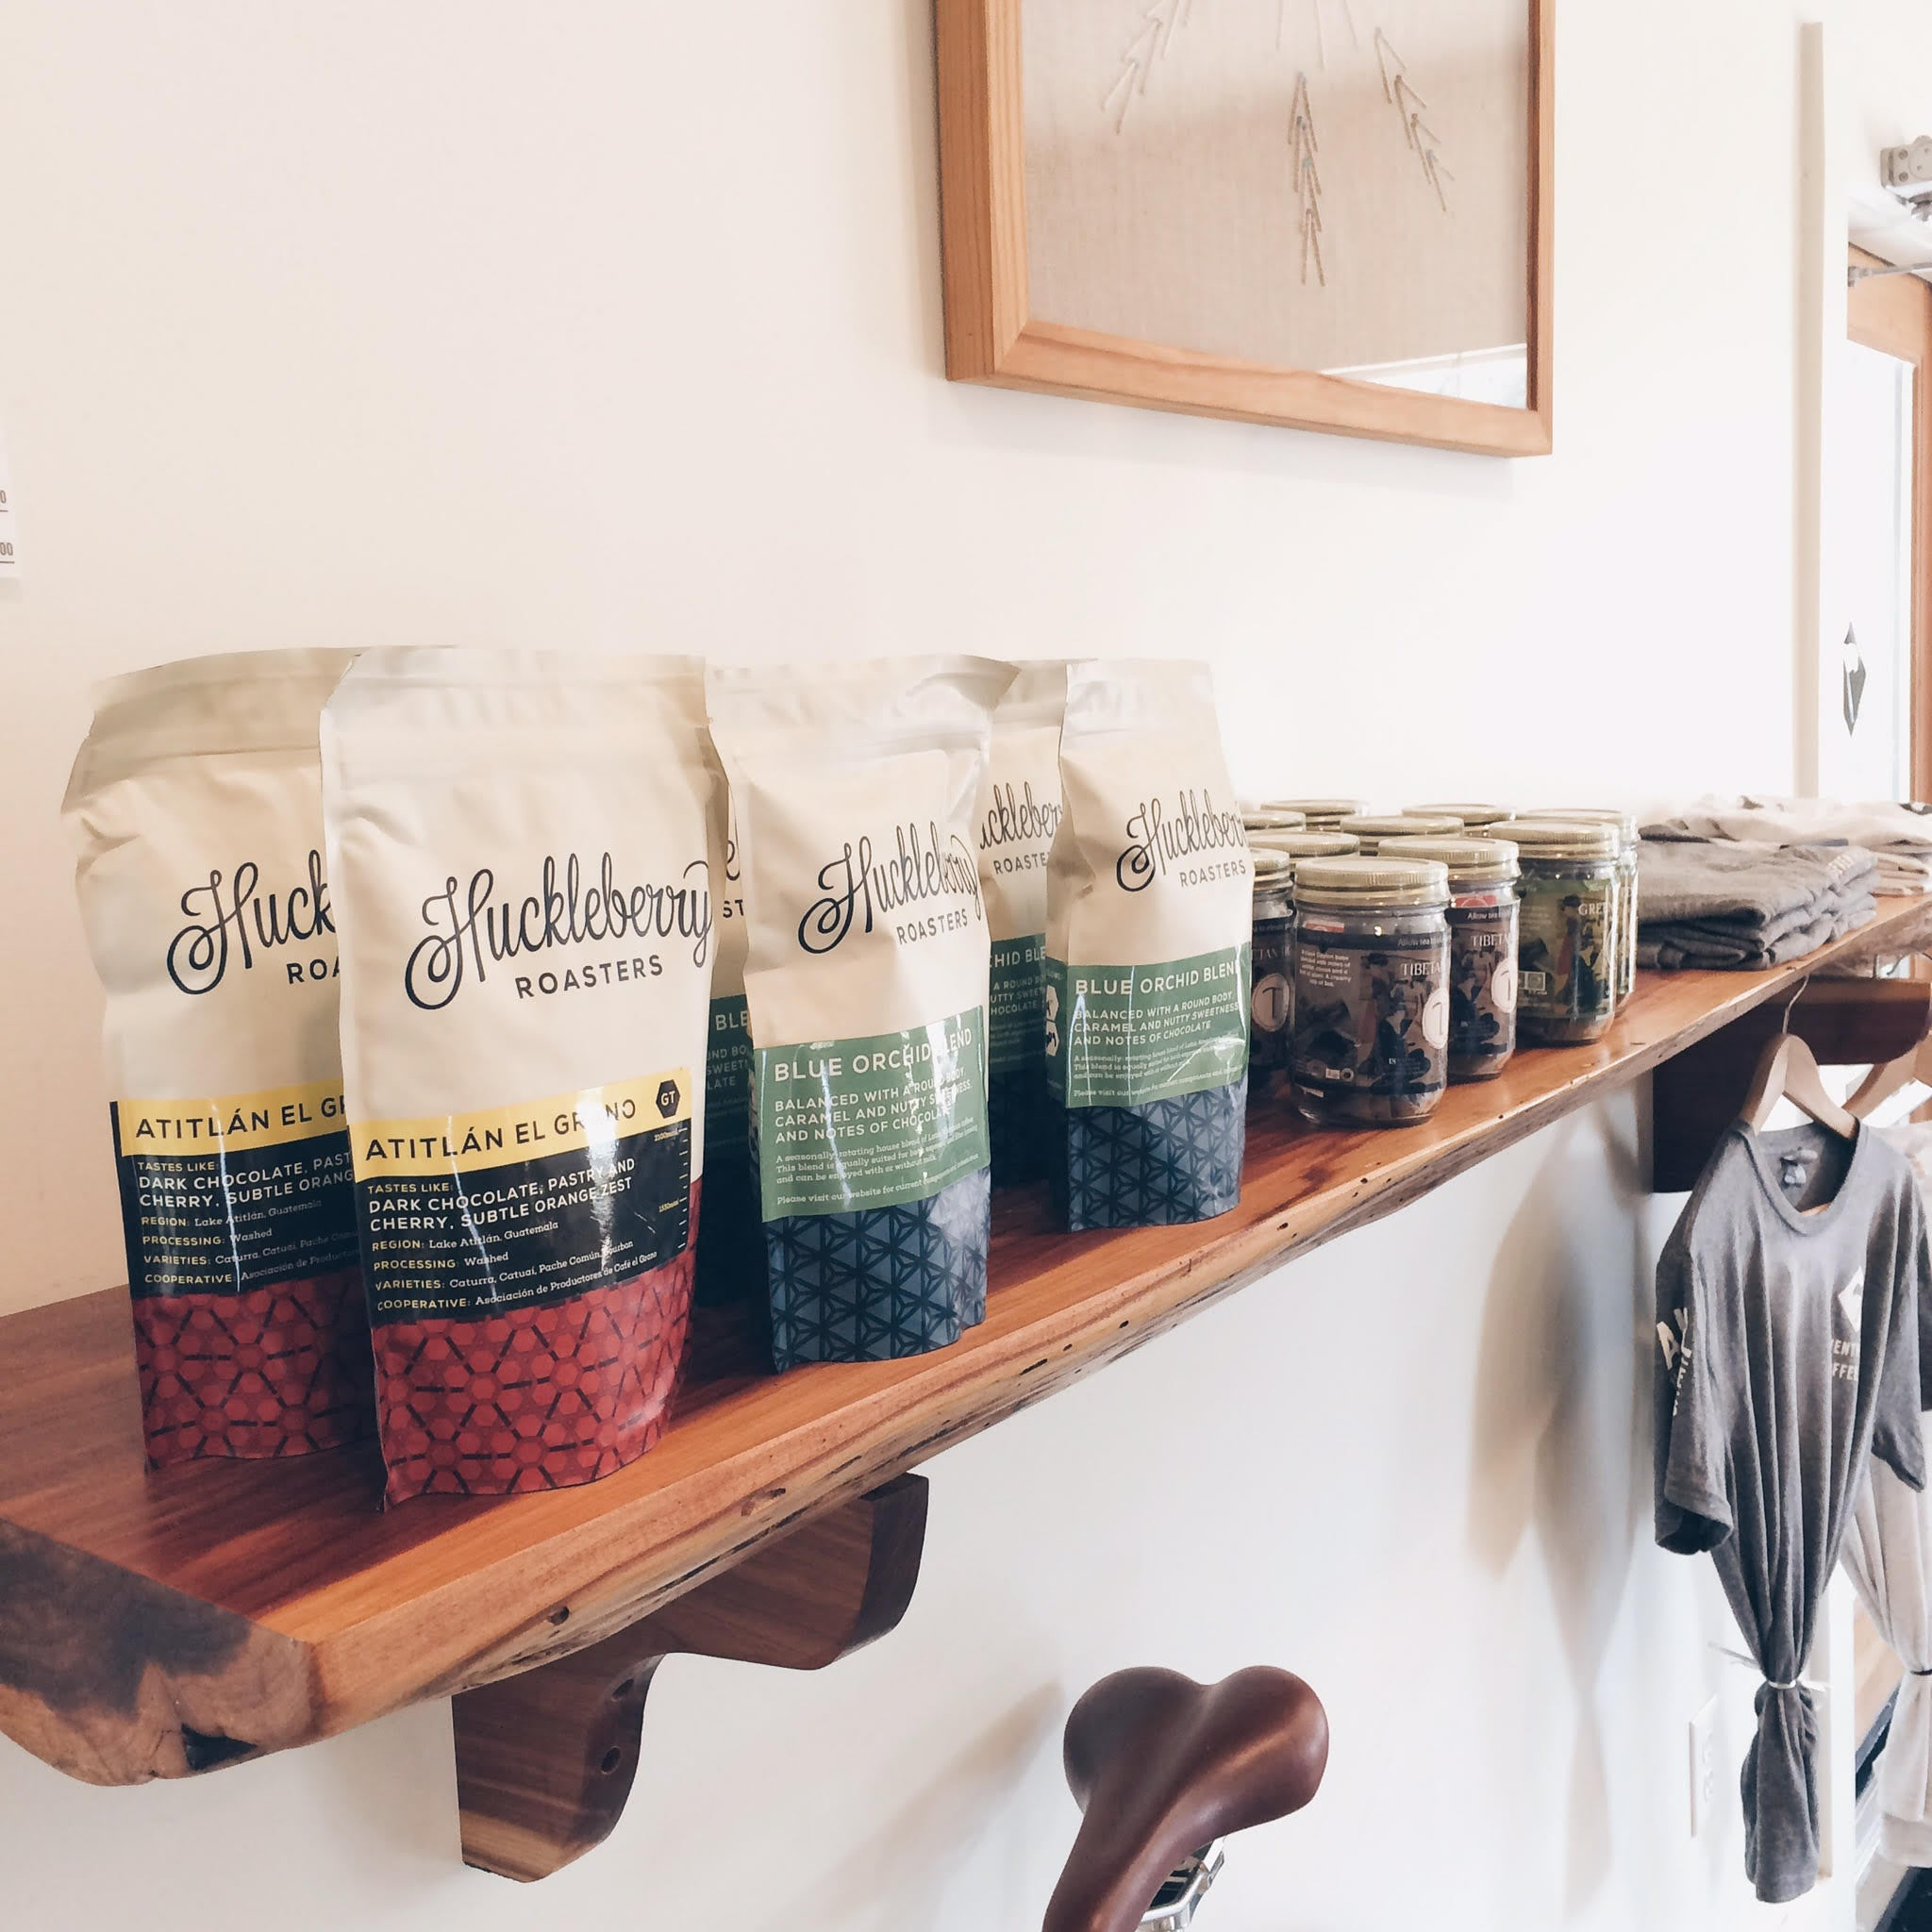 Stunning Coffees For Drinkers of All Styles